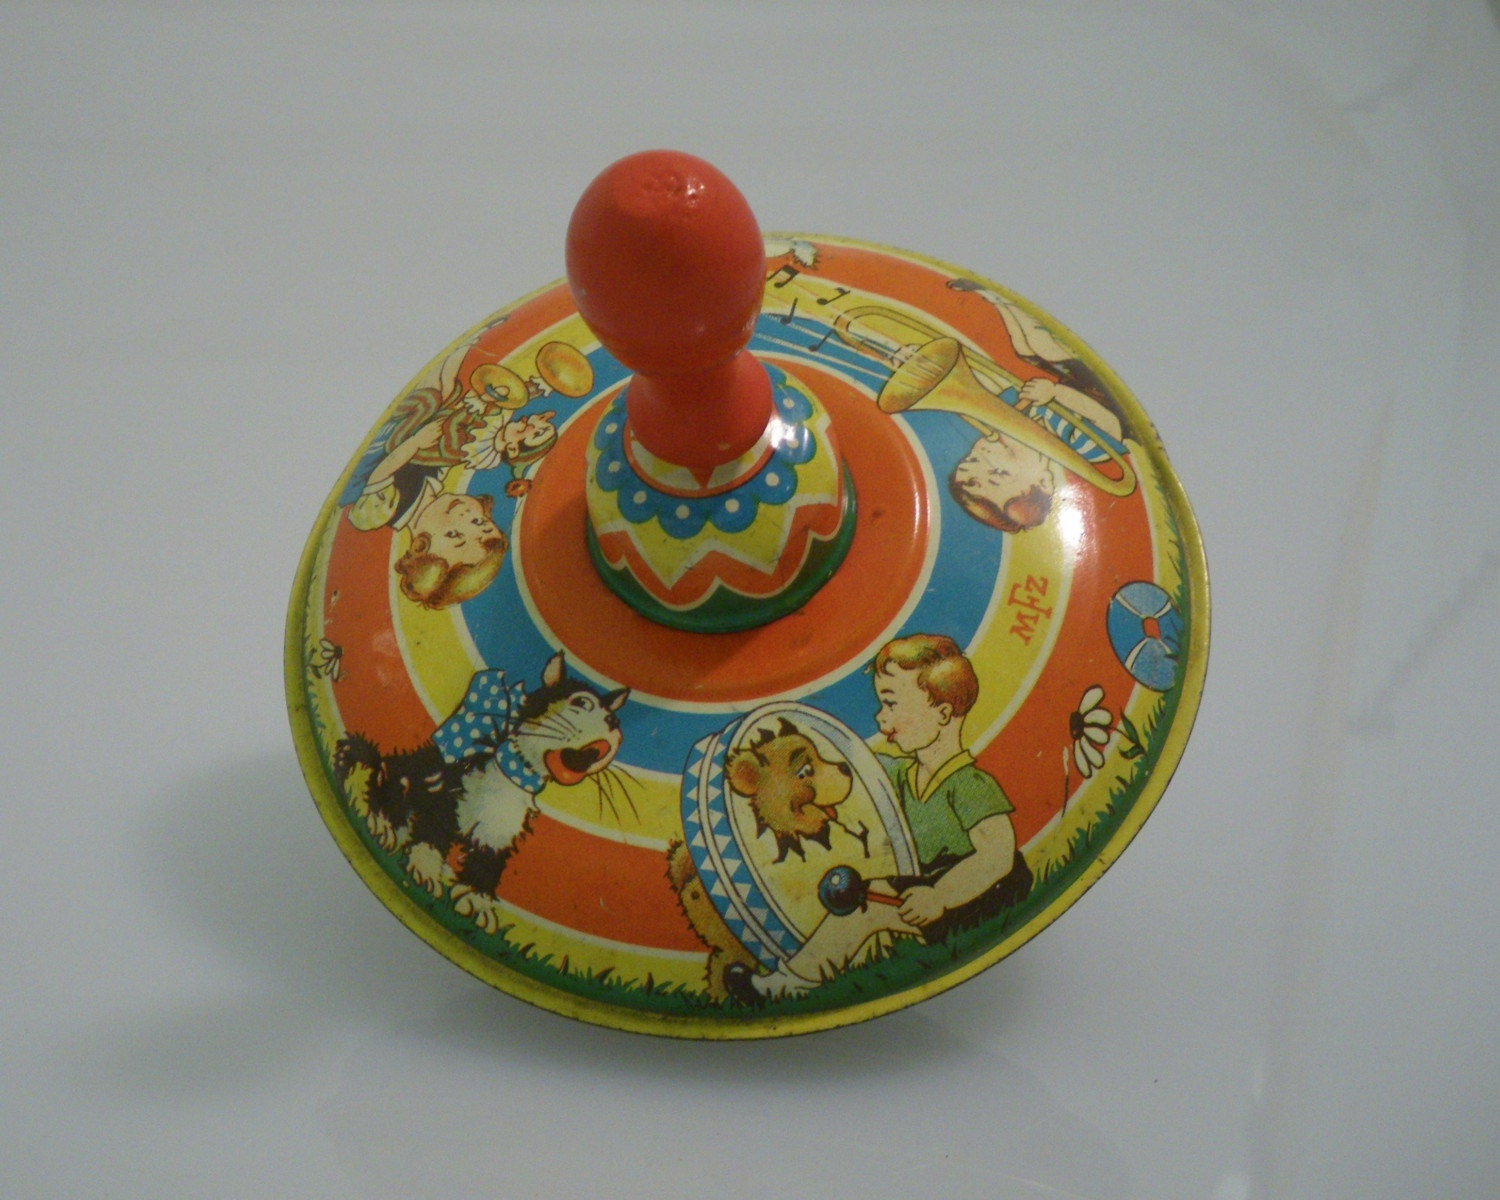 Retro Top Toys : The gallery for gt vintage spinning top toy